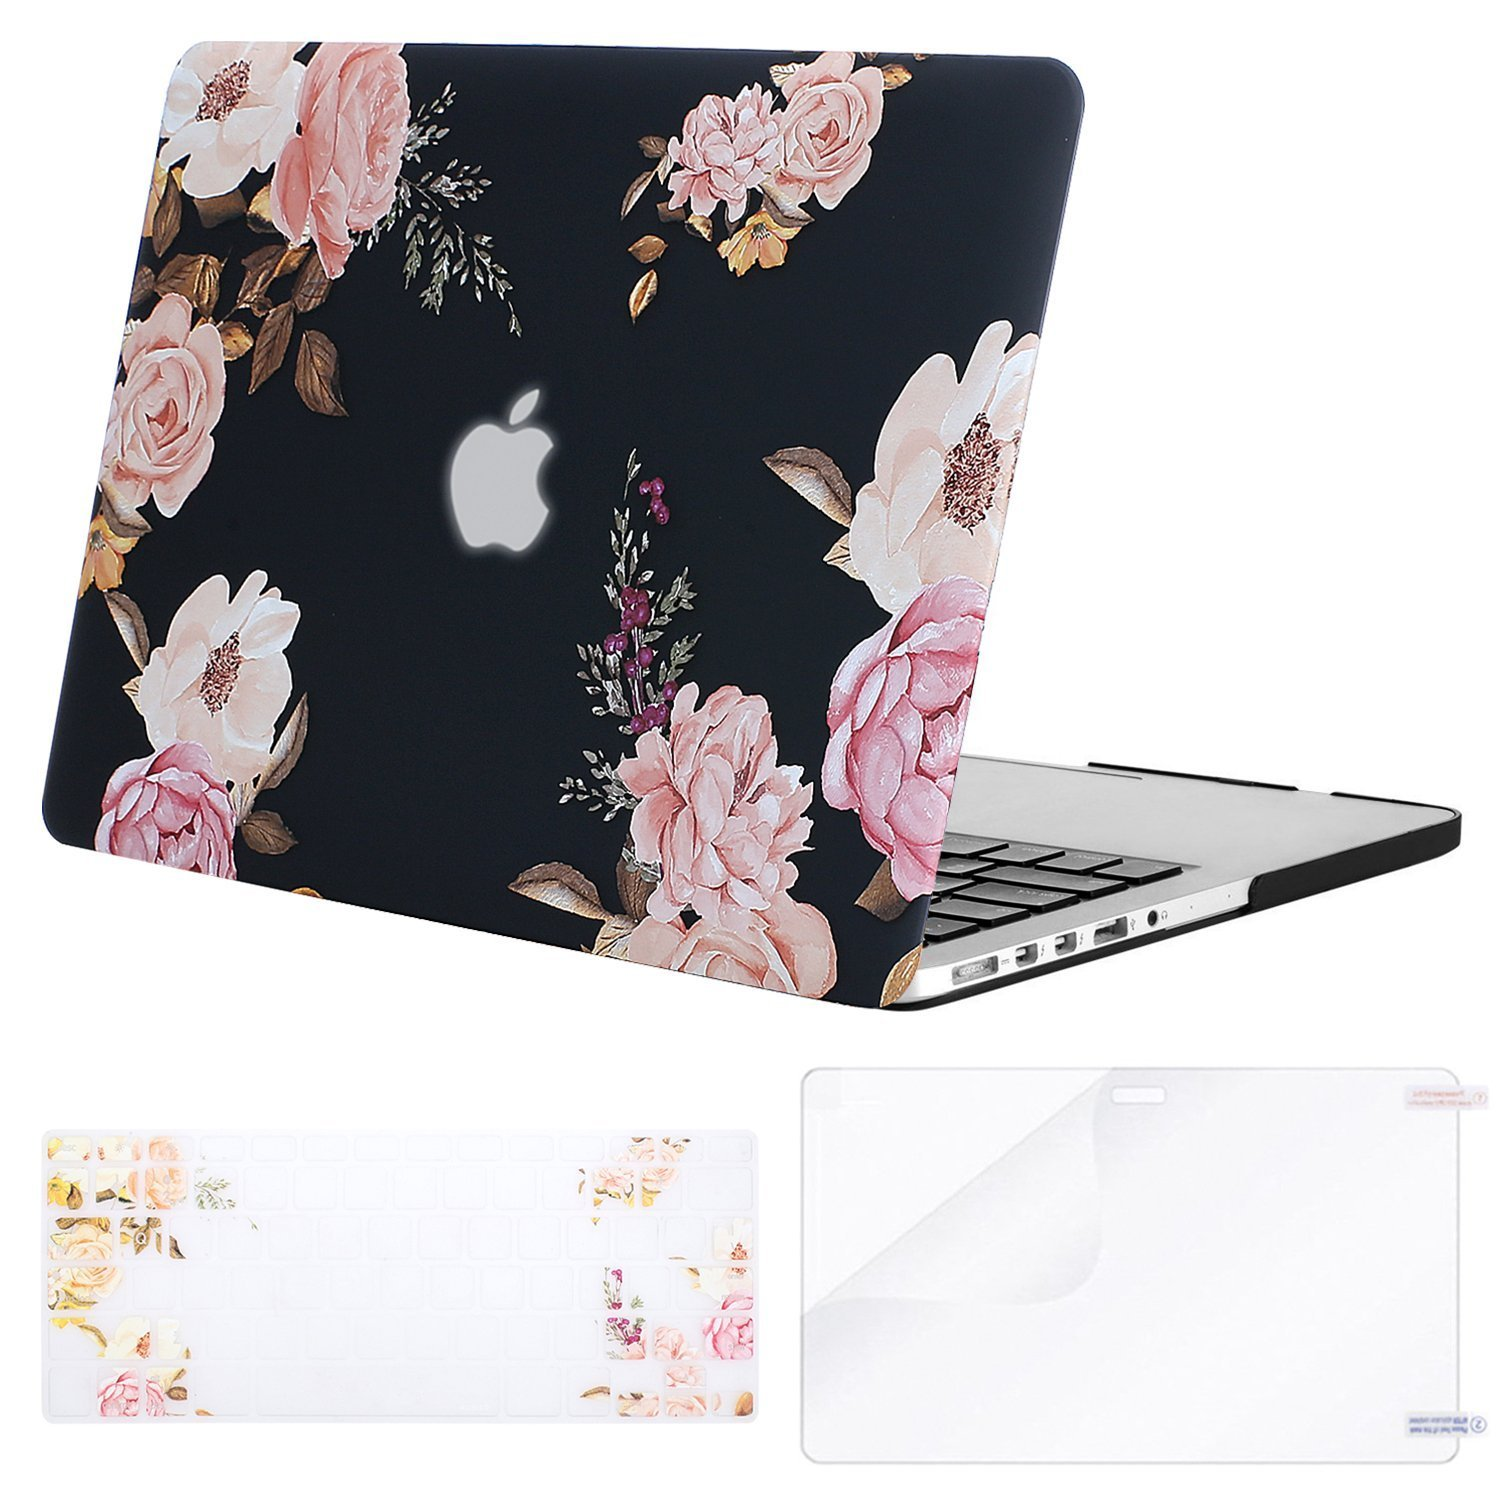 MOSISO Case Only Compatible Older Version MacBook Pro Retina 13 Inch(A1502 / A1425, Release 2015 - end 2012), Plastic Flower Pattern Hard Case & Keyboard Cover & Screen Protector, Peony Blossom